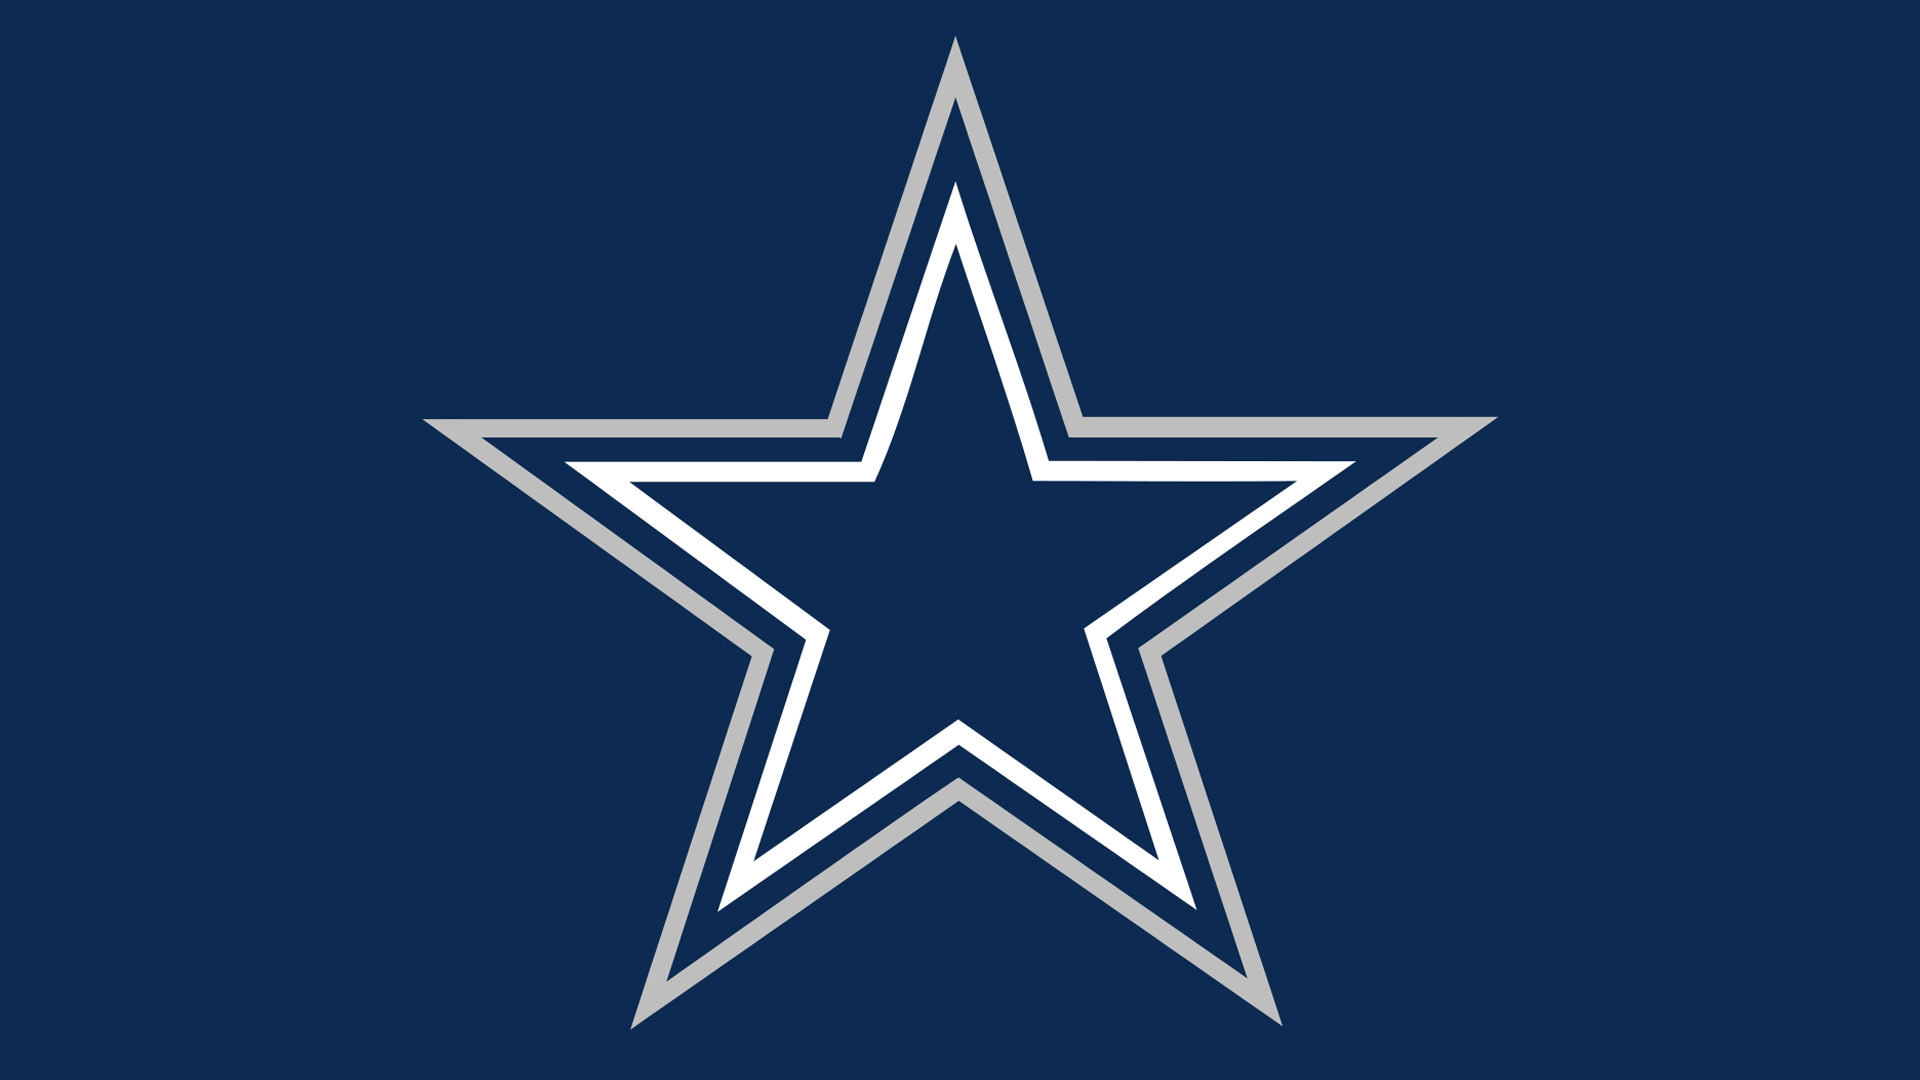 Dallas Cowboys Iphone Wallpaper Dallas Cowboys Wallpapers Pictures Images